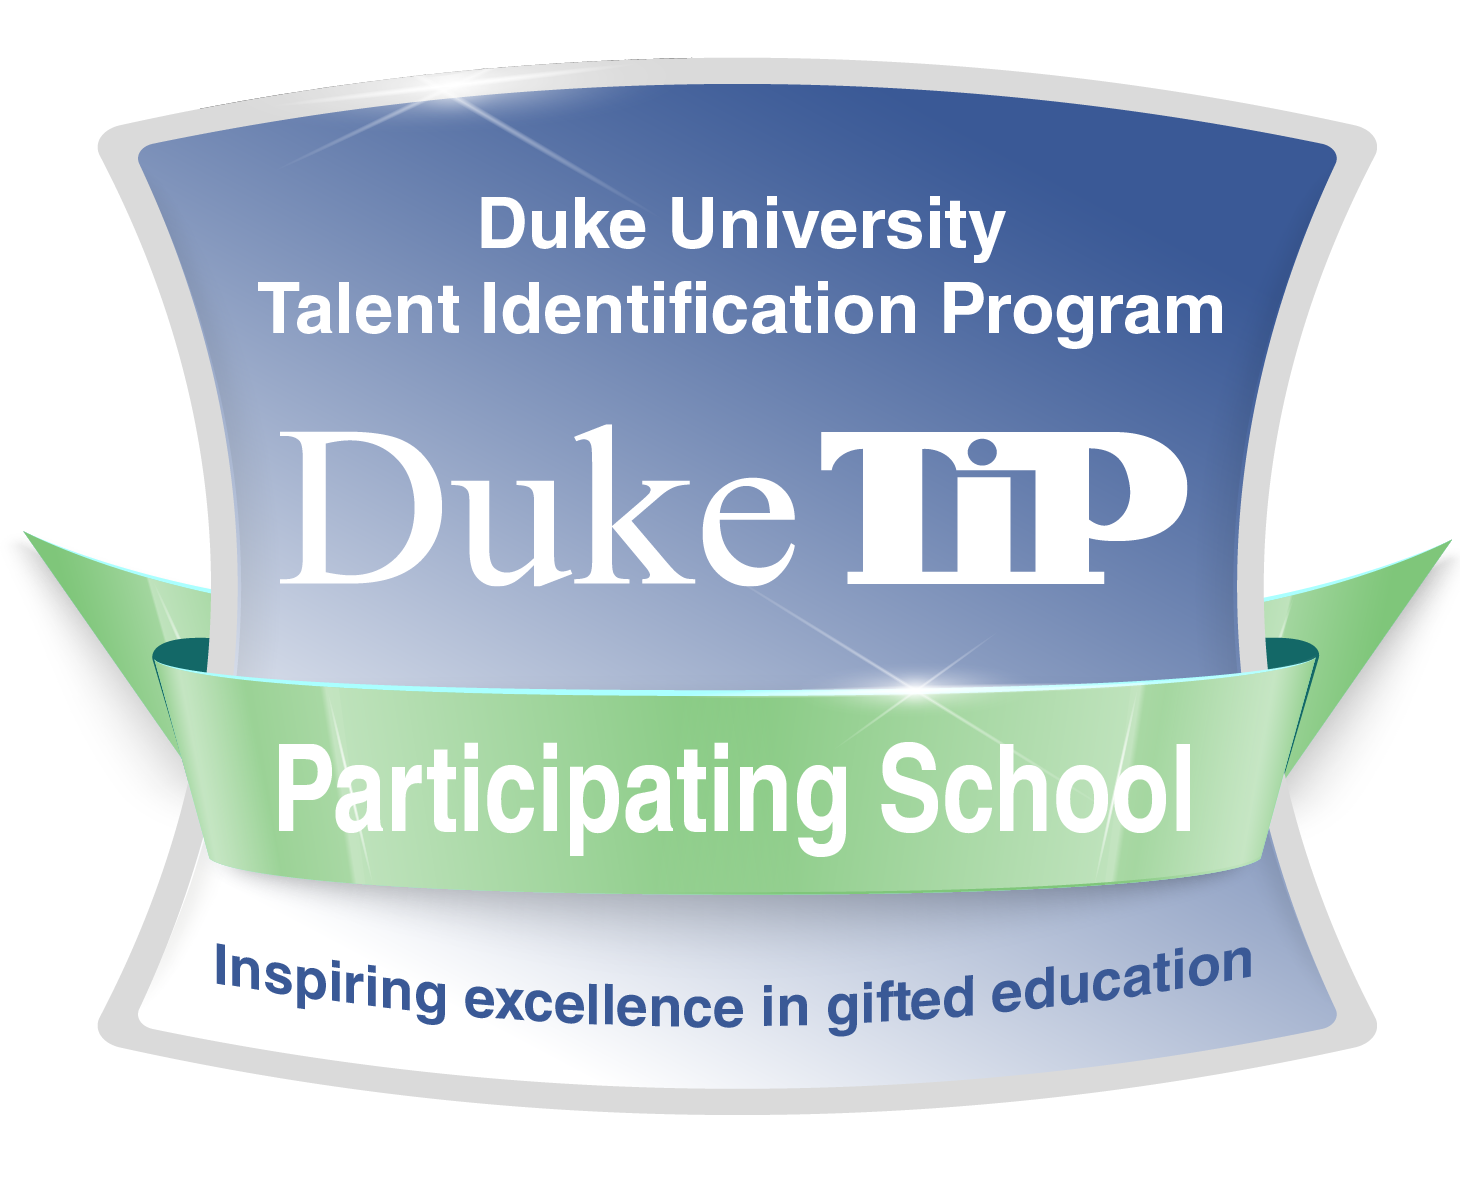 duketip-badge.png